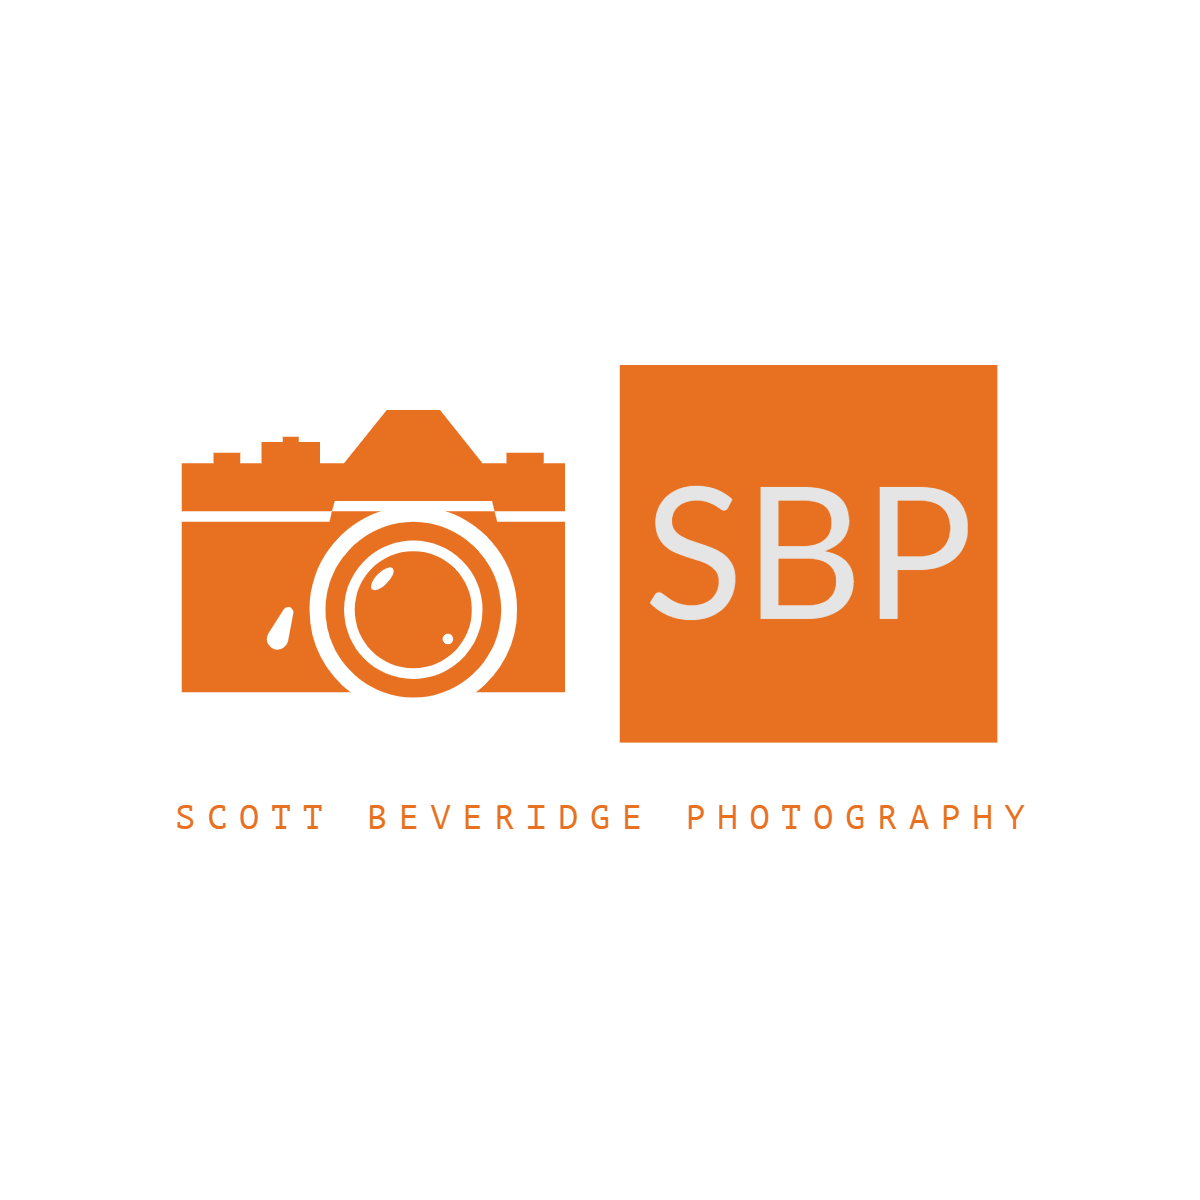 Scott Beveridge Photography